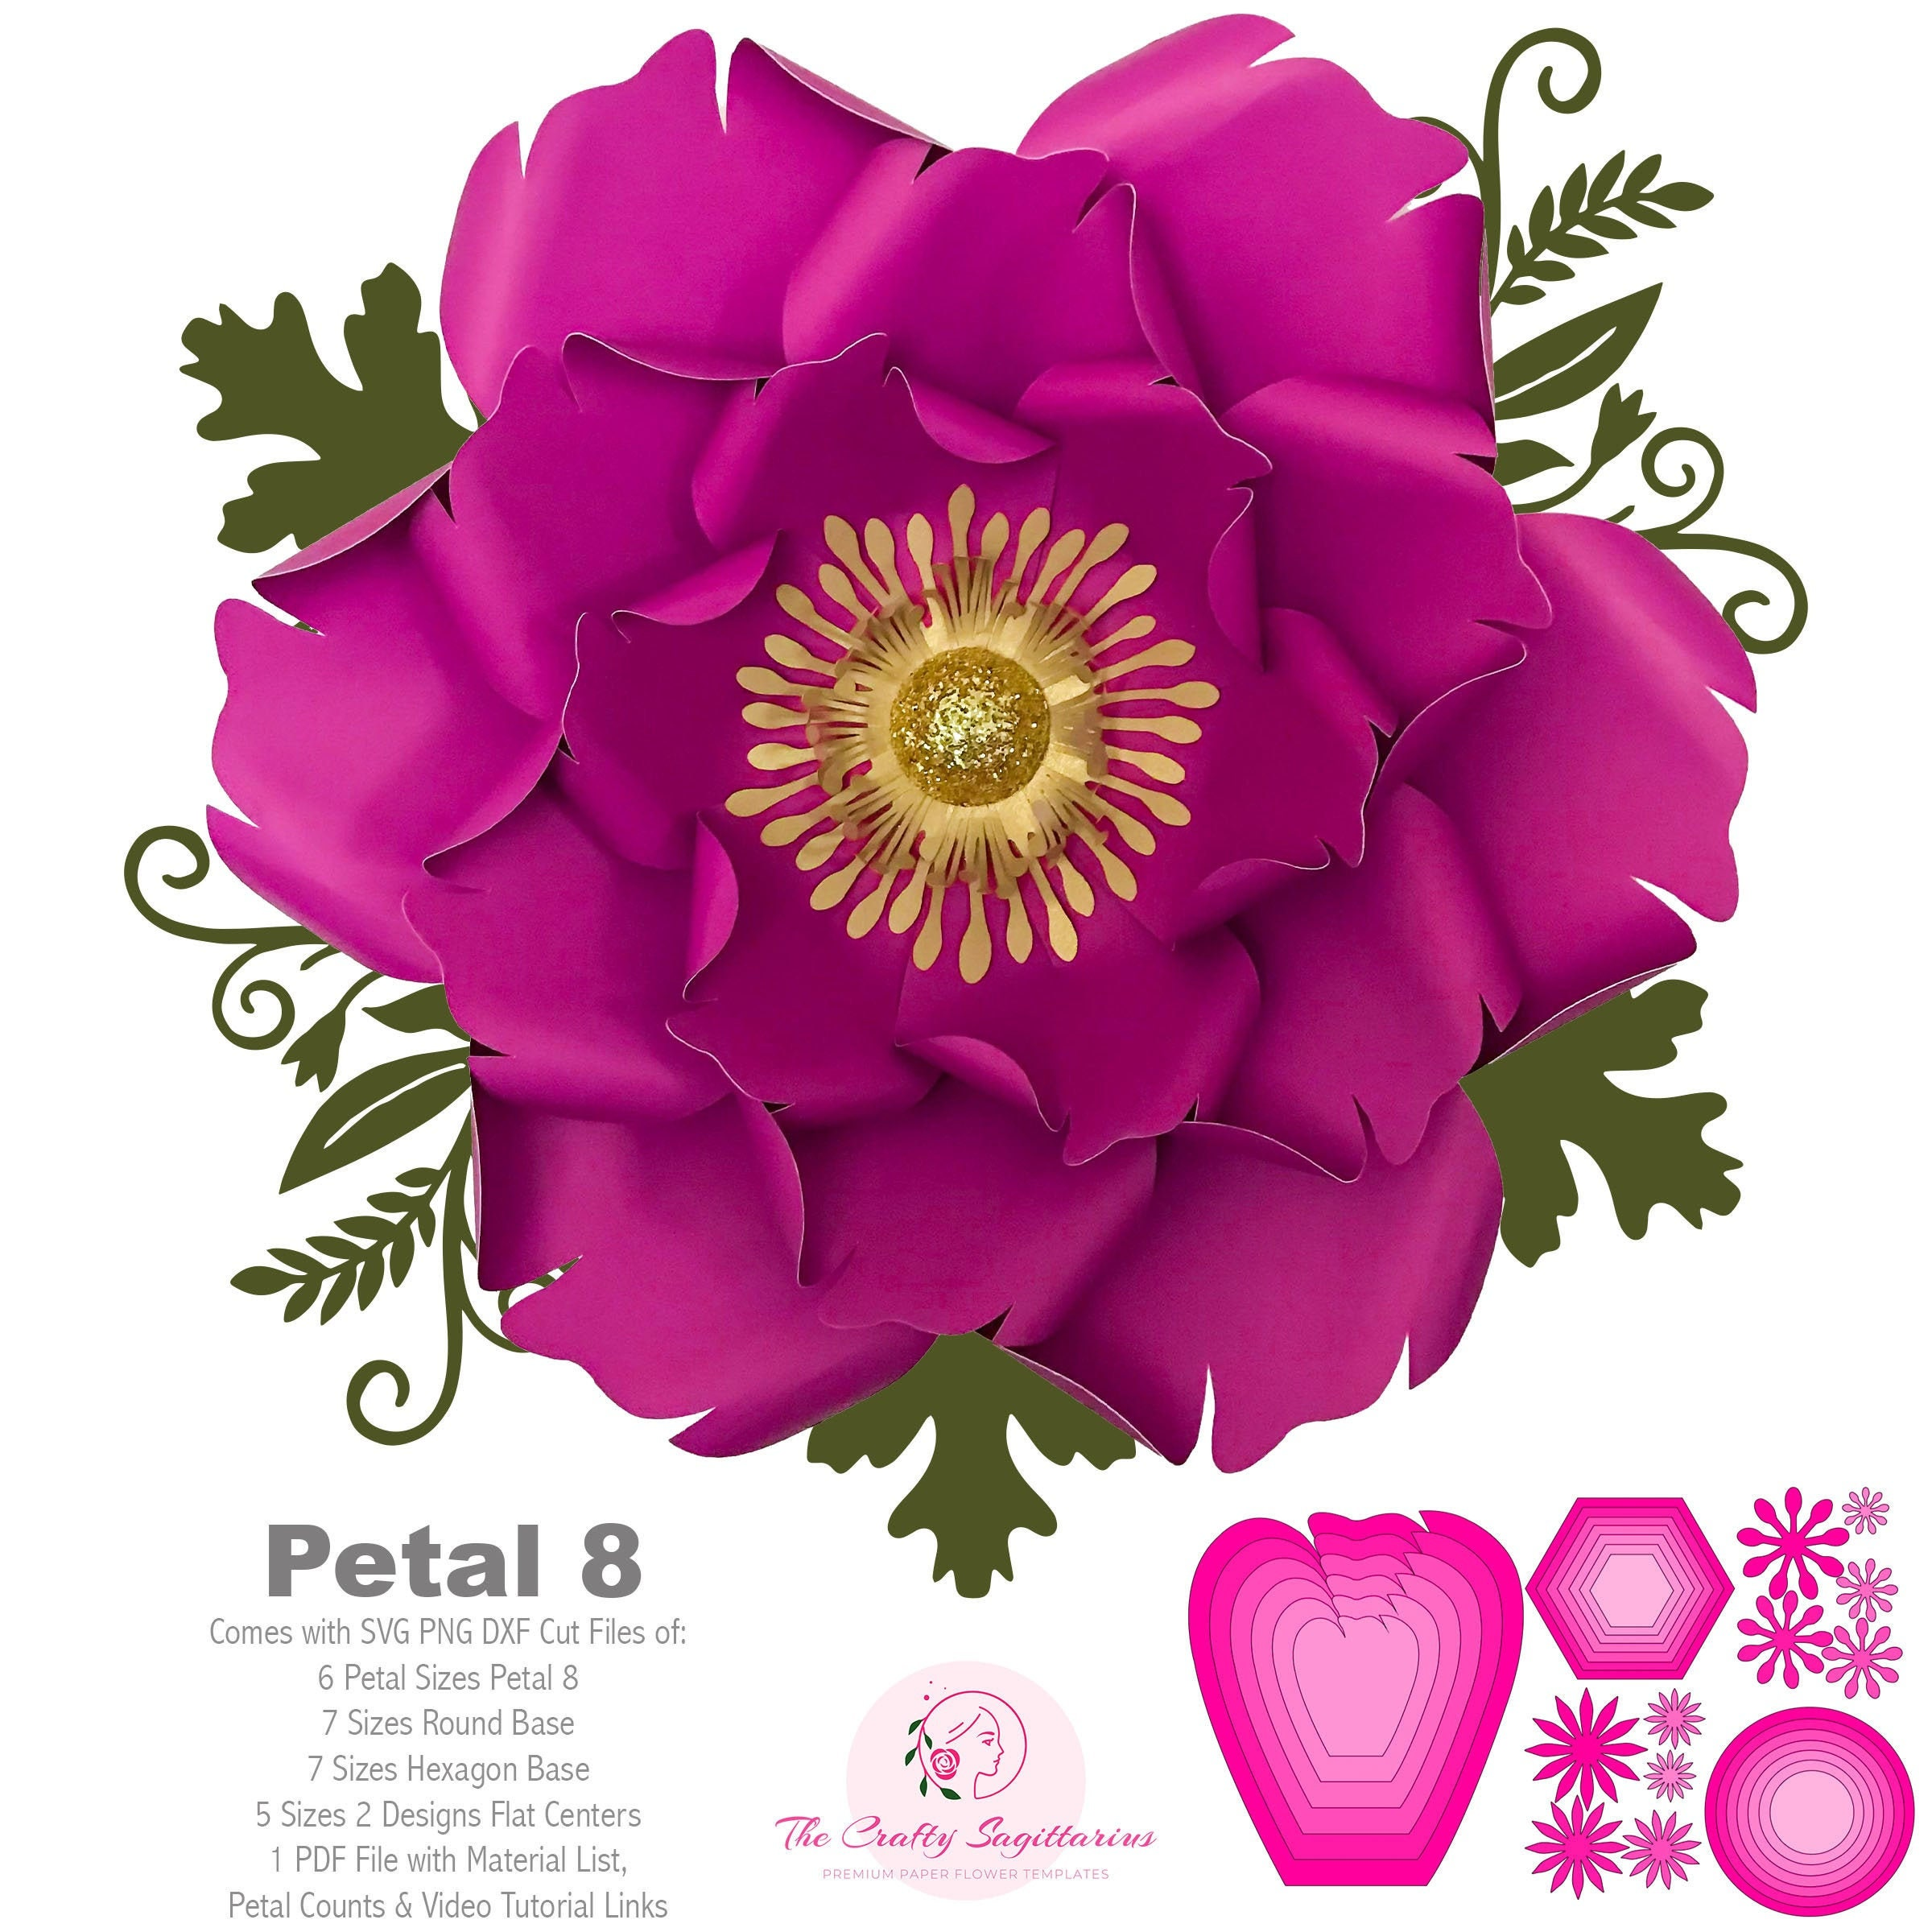 Svg Png Dxf Petal 8 Paper Flowers Template Cut File With Free Base And Flat Centers For Cutting Machines Such As Cricut And Silhouette Cameo